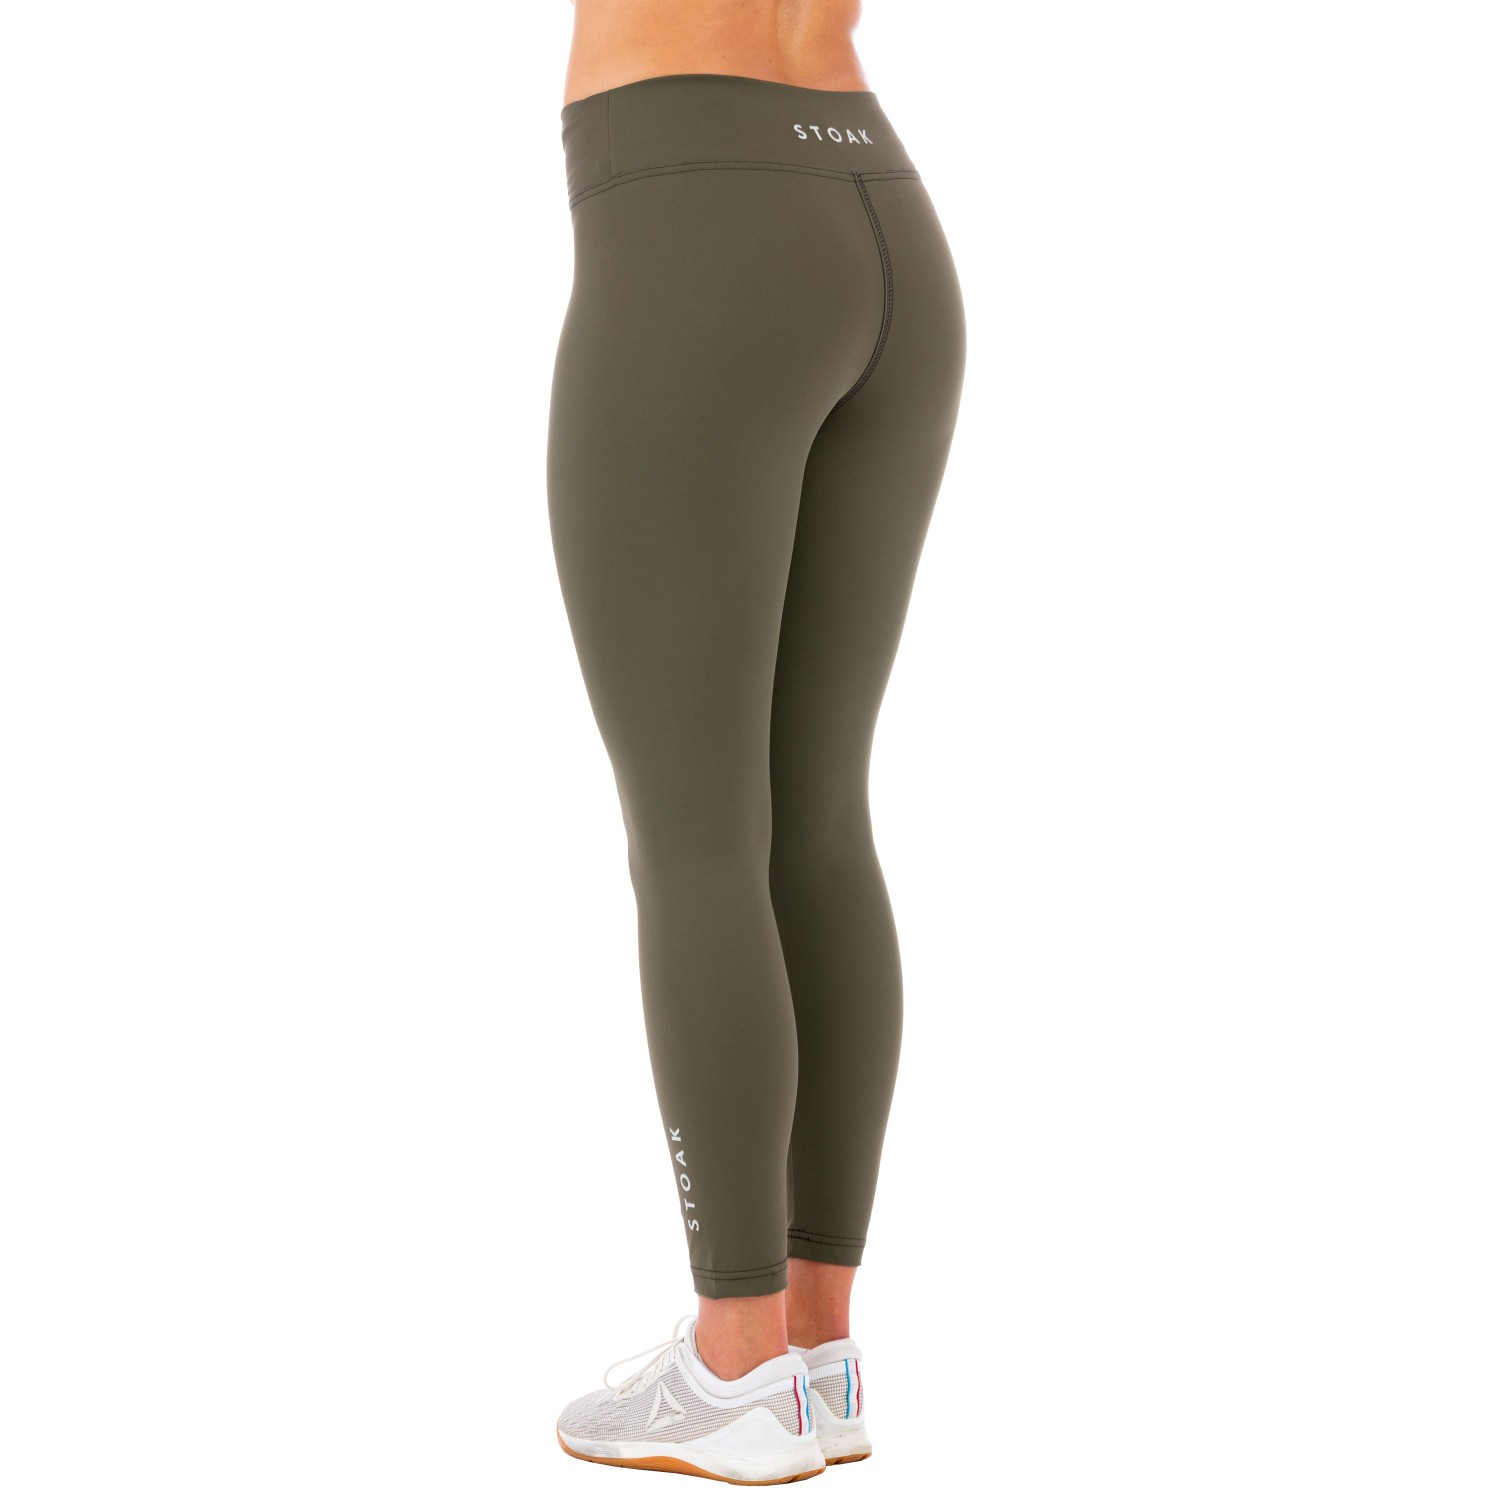 STOAK COMBAT Performance Leggings